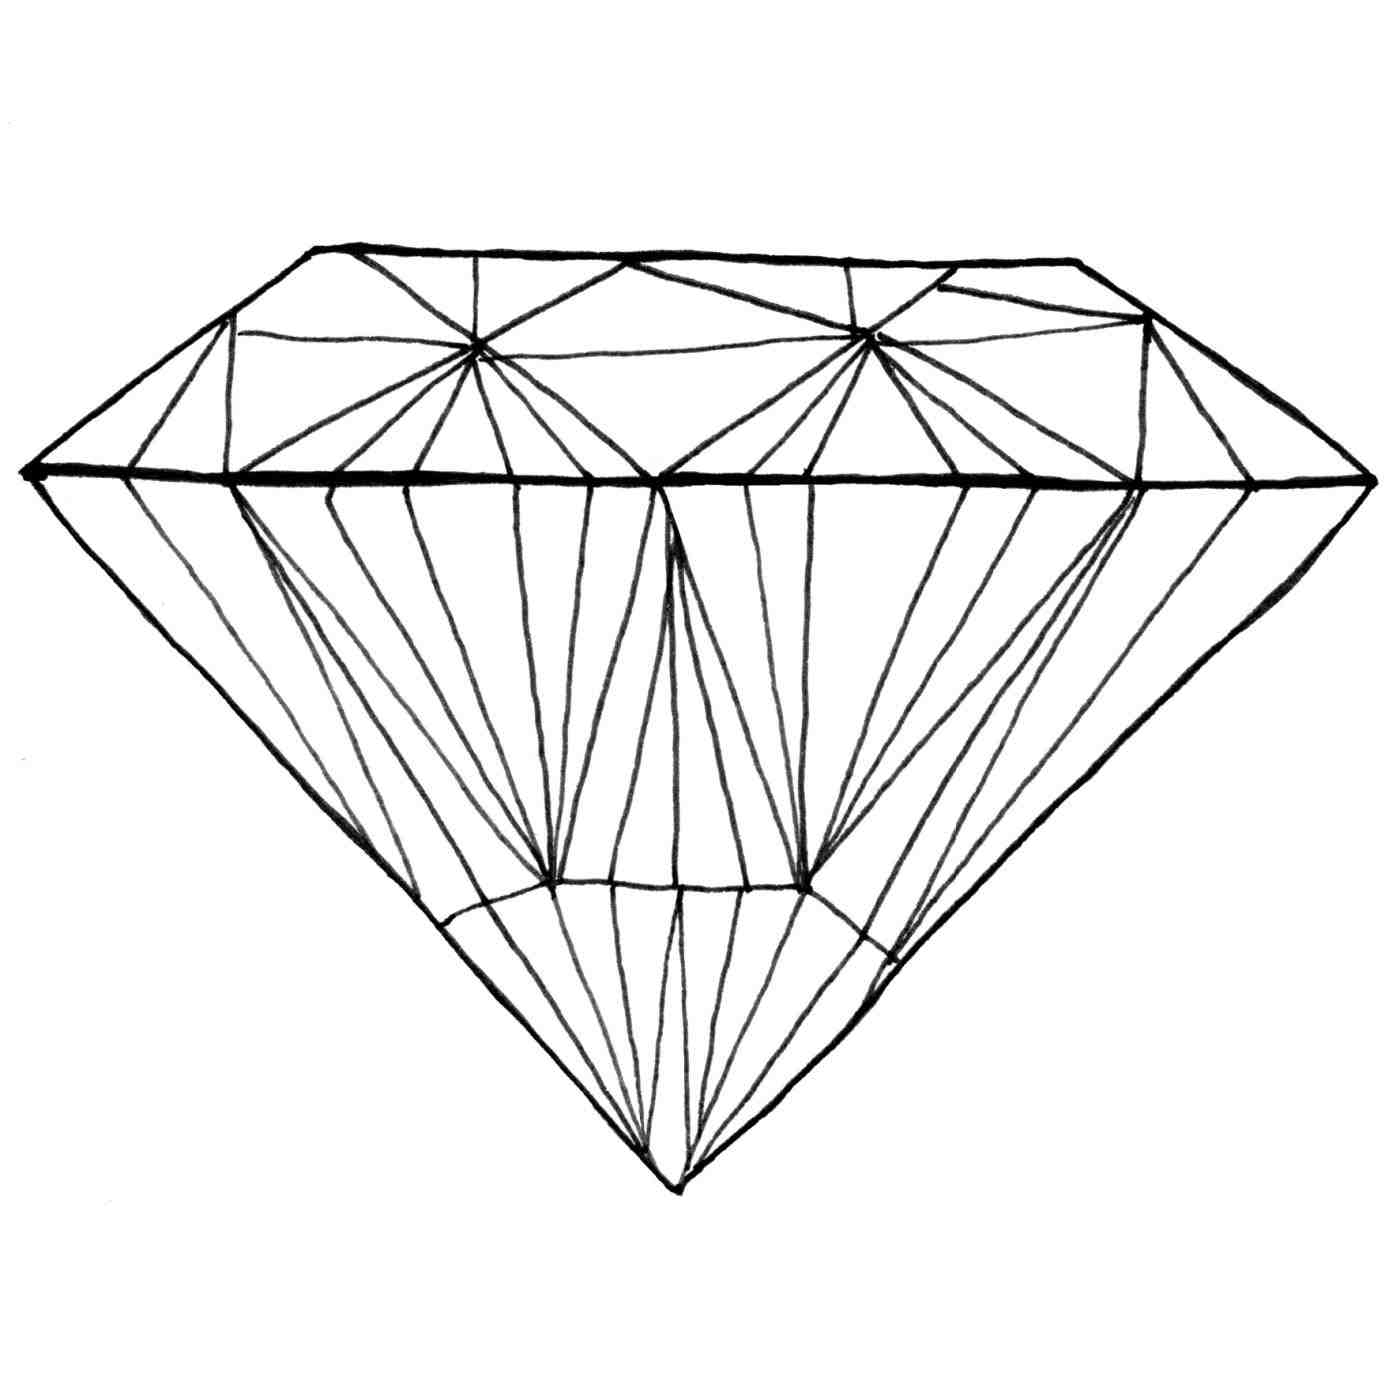 1400x1400 The Images Collection Of Doodle Easy Drawings Diamond Step By Draw